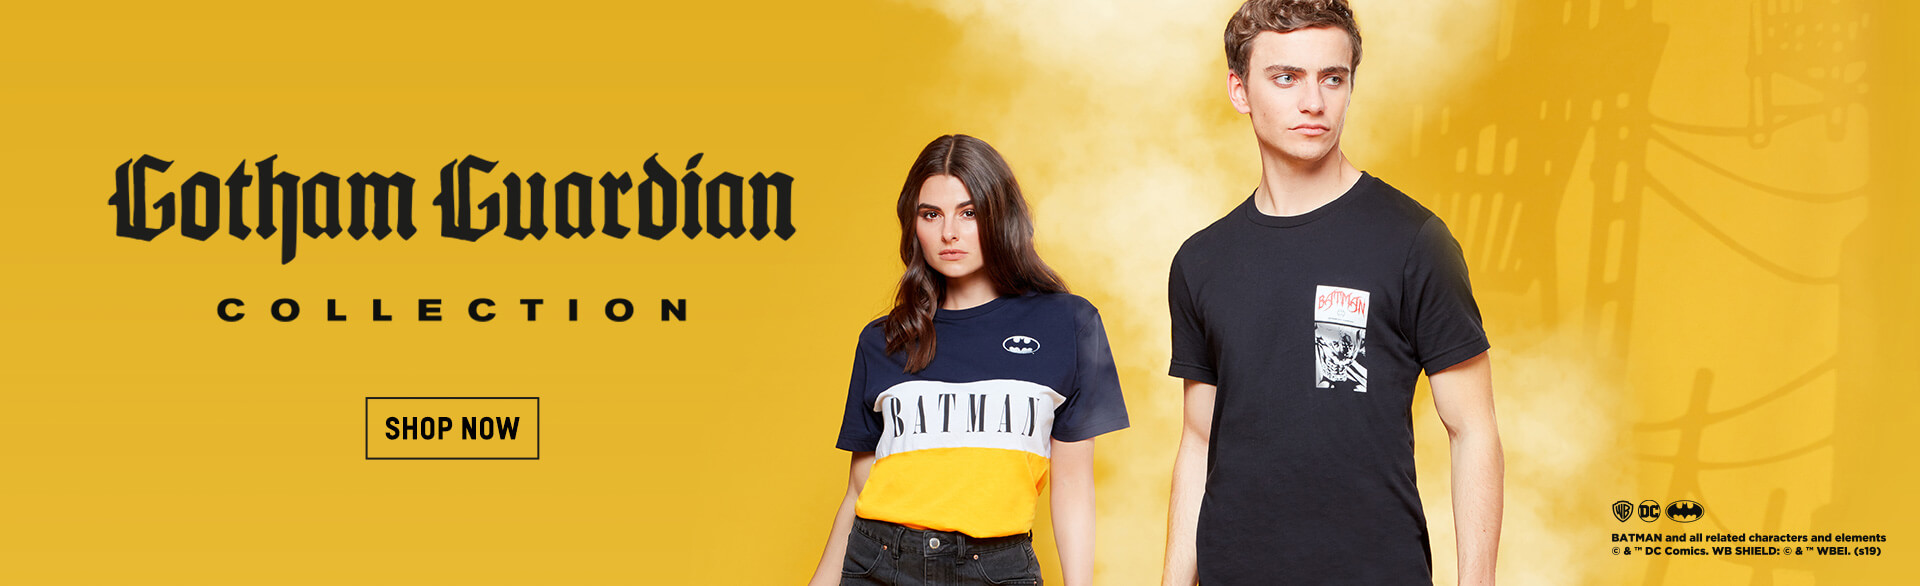 Gotham Guardian Collection